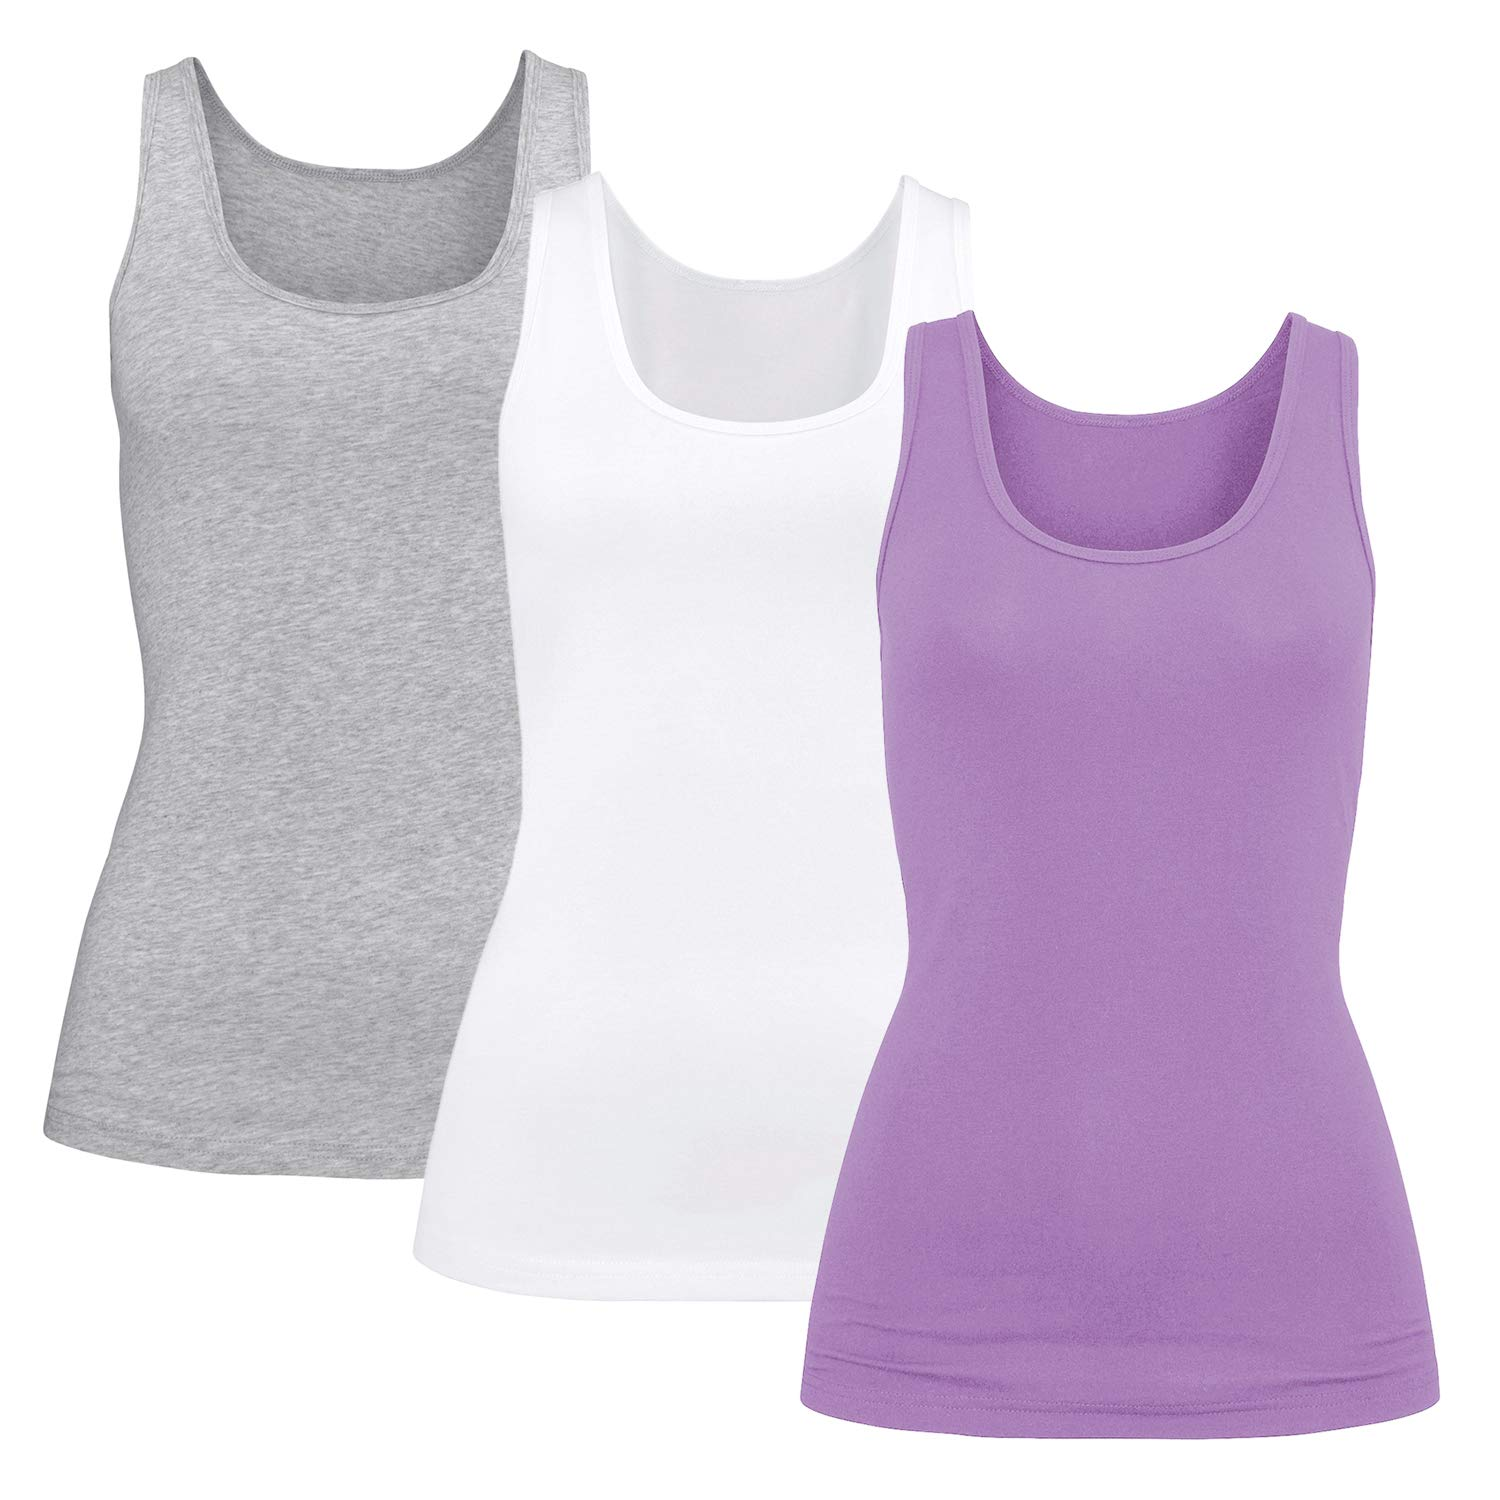 H HIAMIGOS Womens Modal Built-in Bra Padded Camisole Yoga Tanks Tops